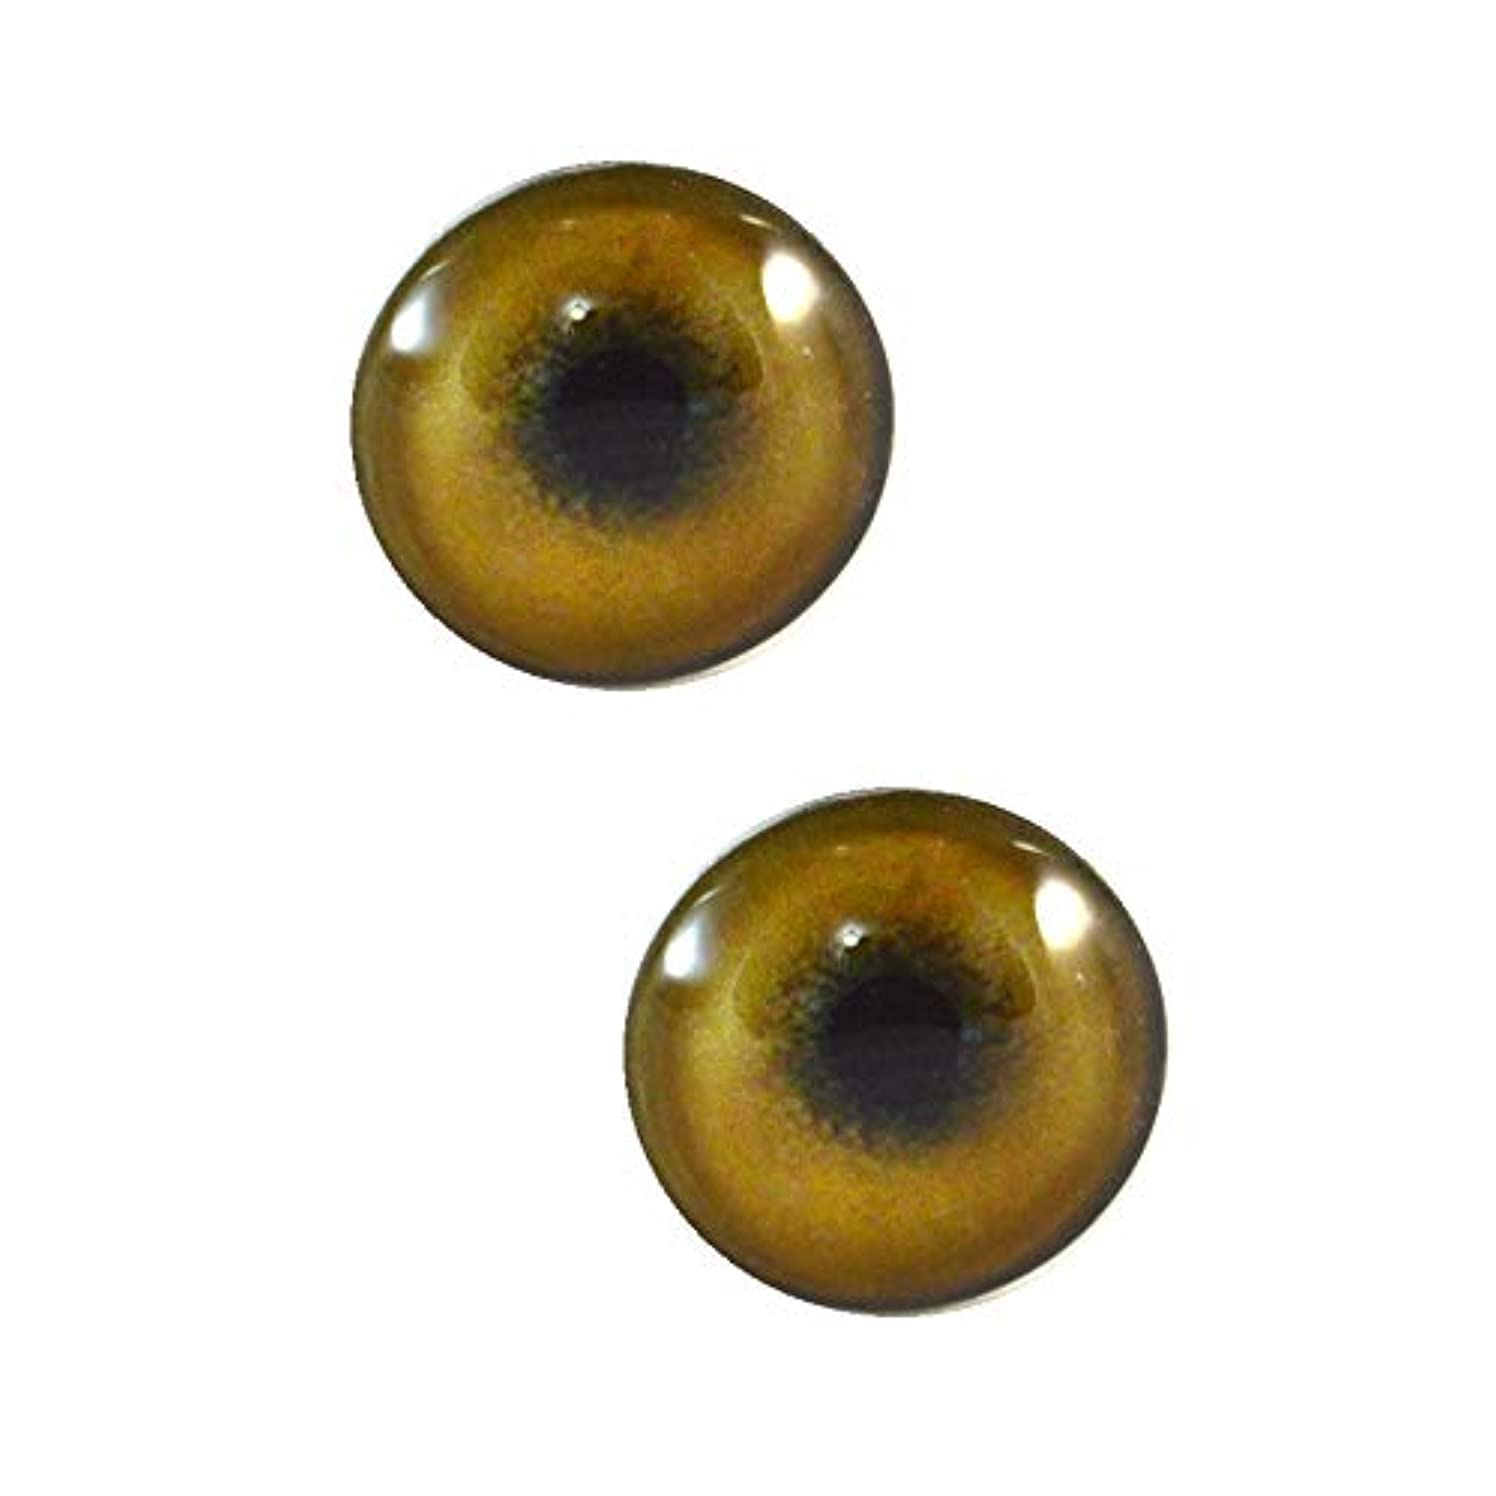 30mm Light Brown Tan Lion Glass Eyes Realistic Pair for Art Dolls, Sculptures, Props, Masks, Fursuits, Jewelry Making, Taxidermy, and More